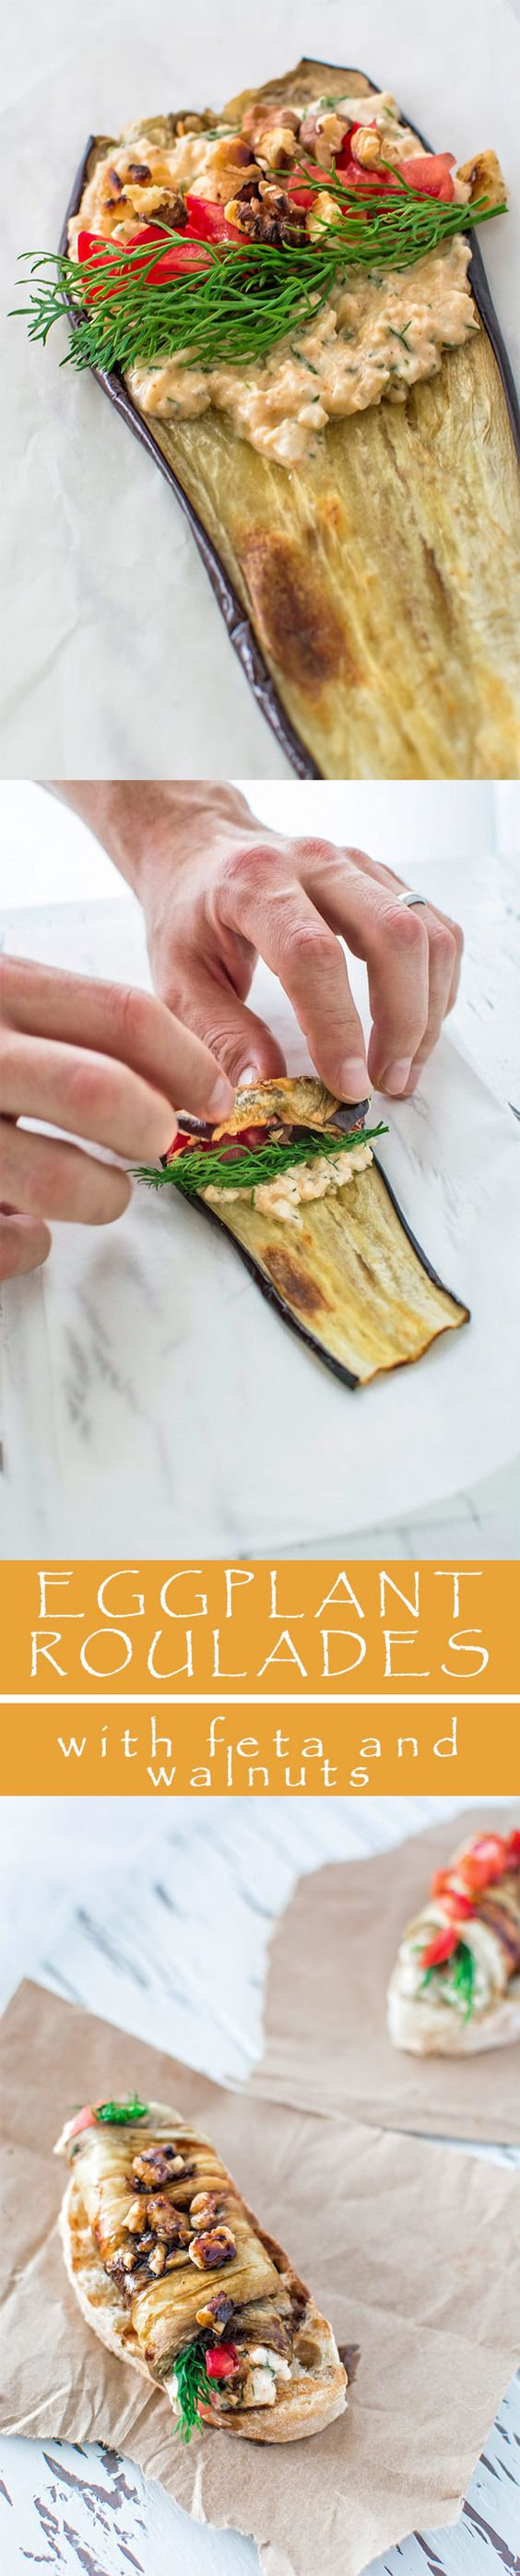 Eggplant roulades stuffed with creamy feta cheese, fresh tomatoes and ...